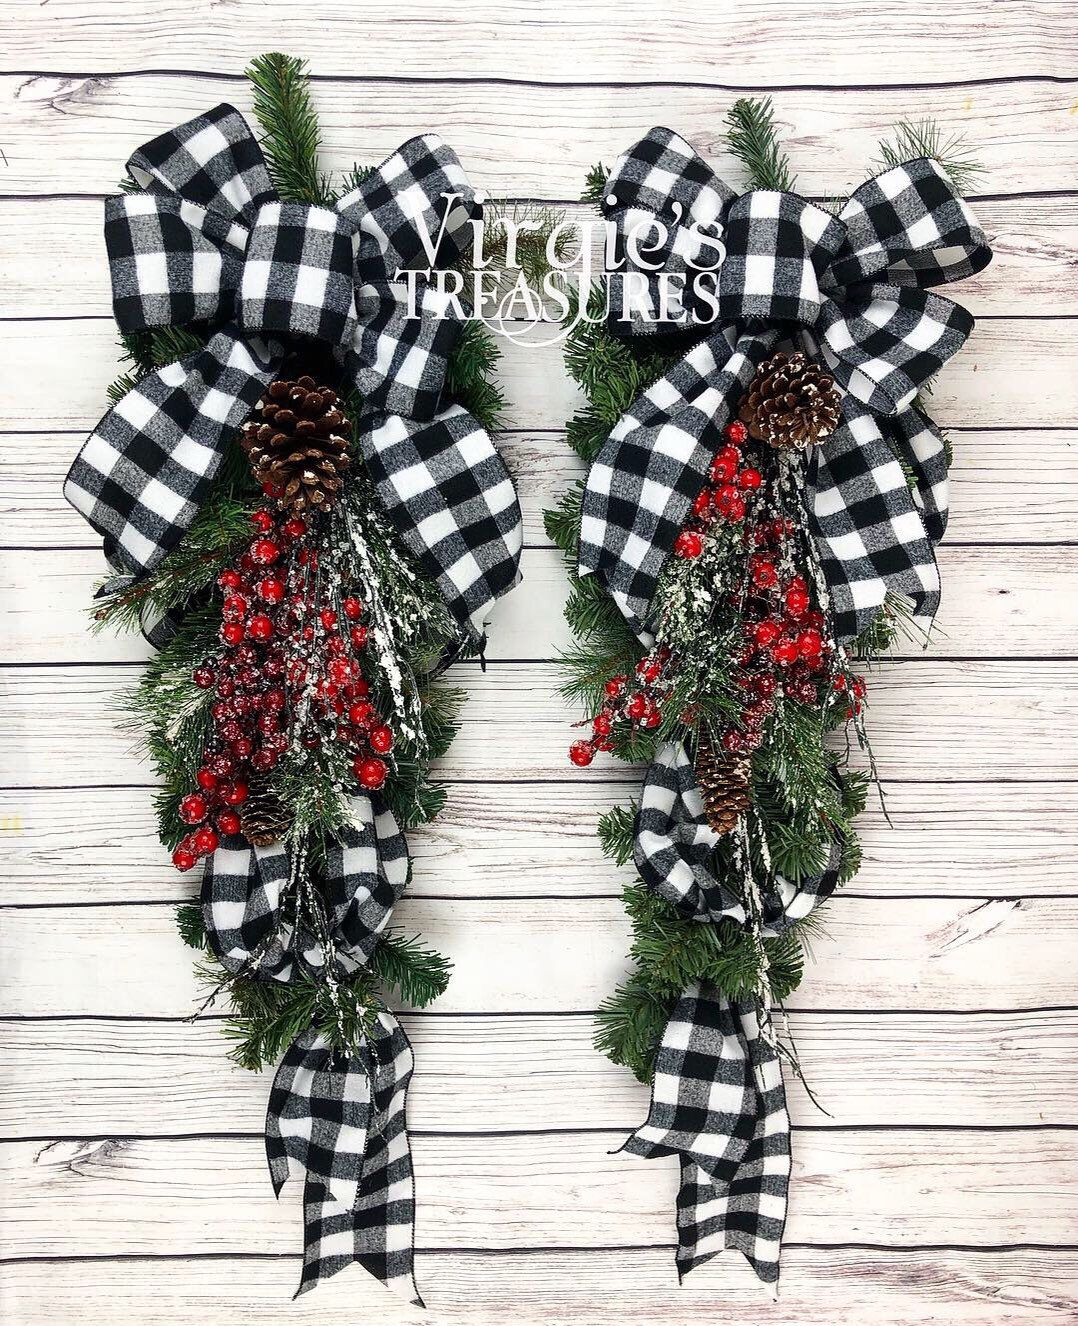 Buffalo Plaid Wreaths for Front Door, Buffalo Plaid Teardrop Swags, Christmas Teardrop Swags, Christmas Swags, Farmhouse Holiday Wreaths -   14 holiday Wreaths design ideas